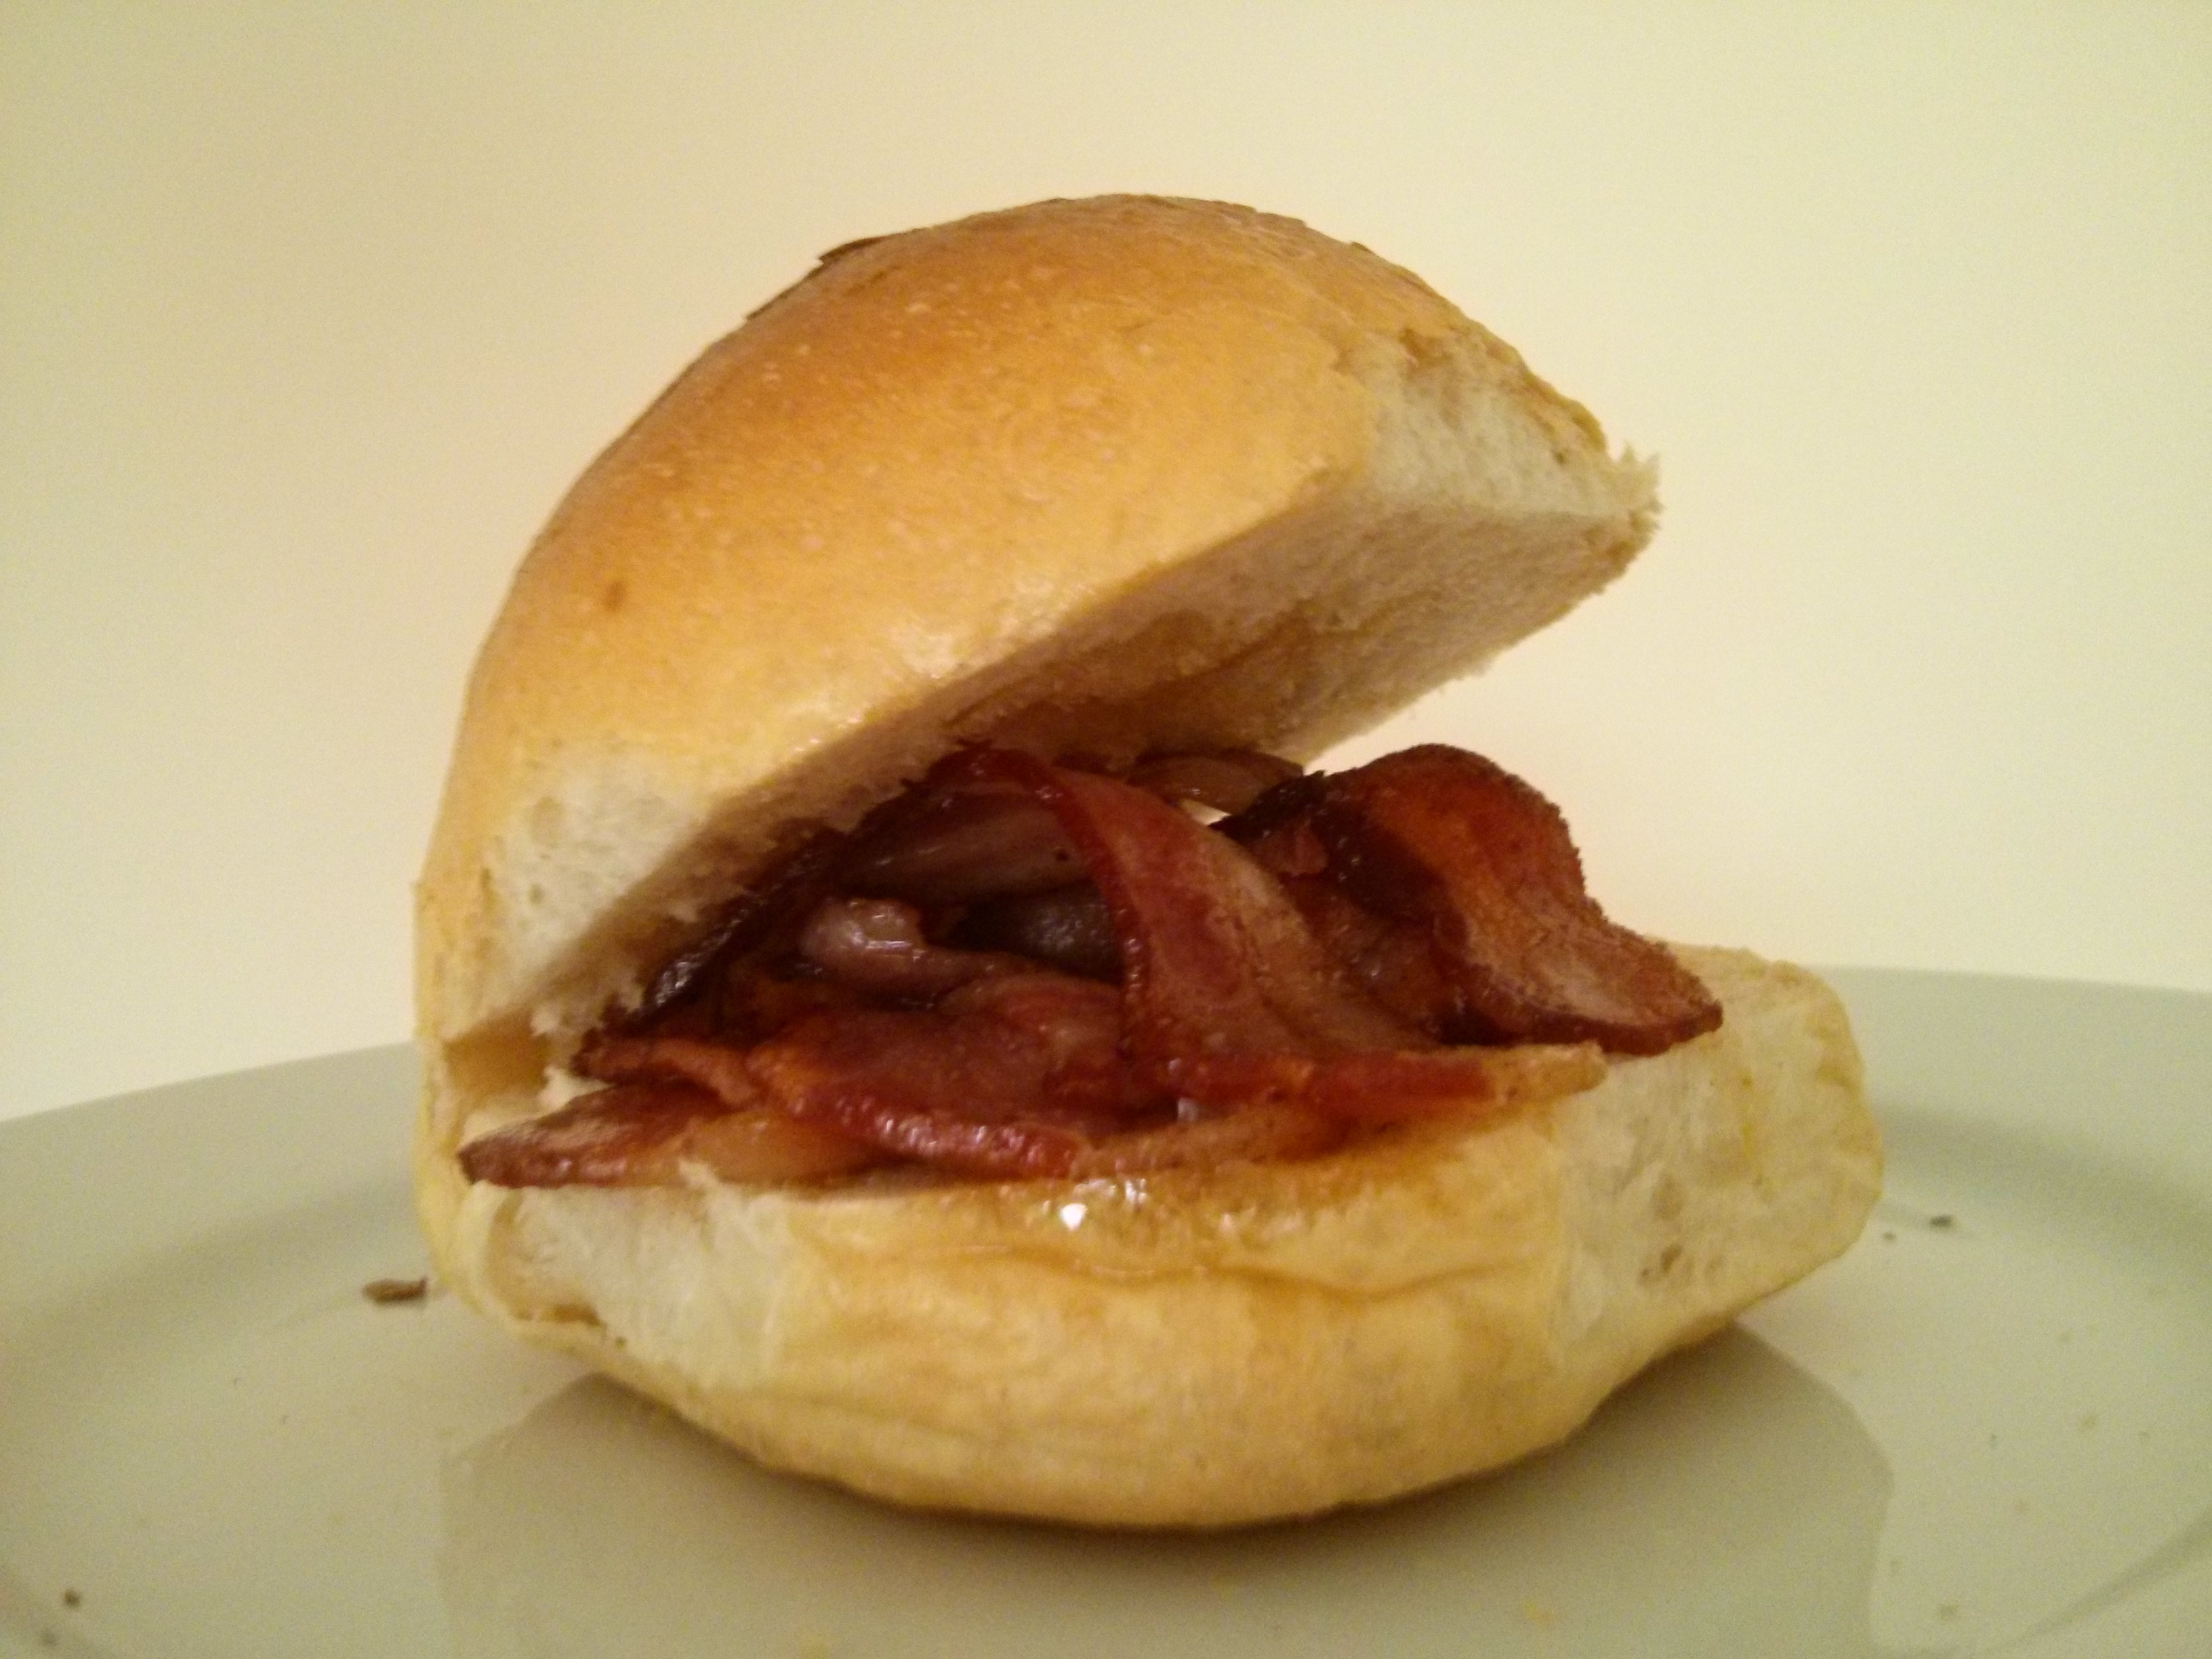 ... truly amazing, then it has to be bread + bacon = bacon sandwich